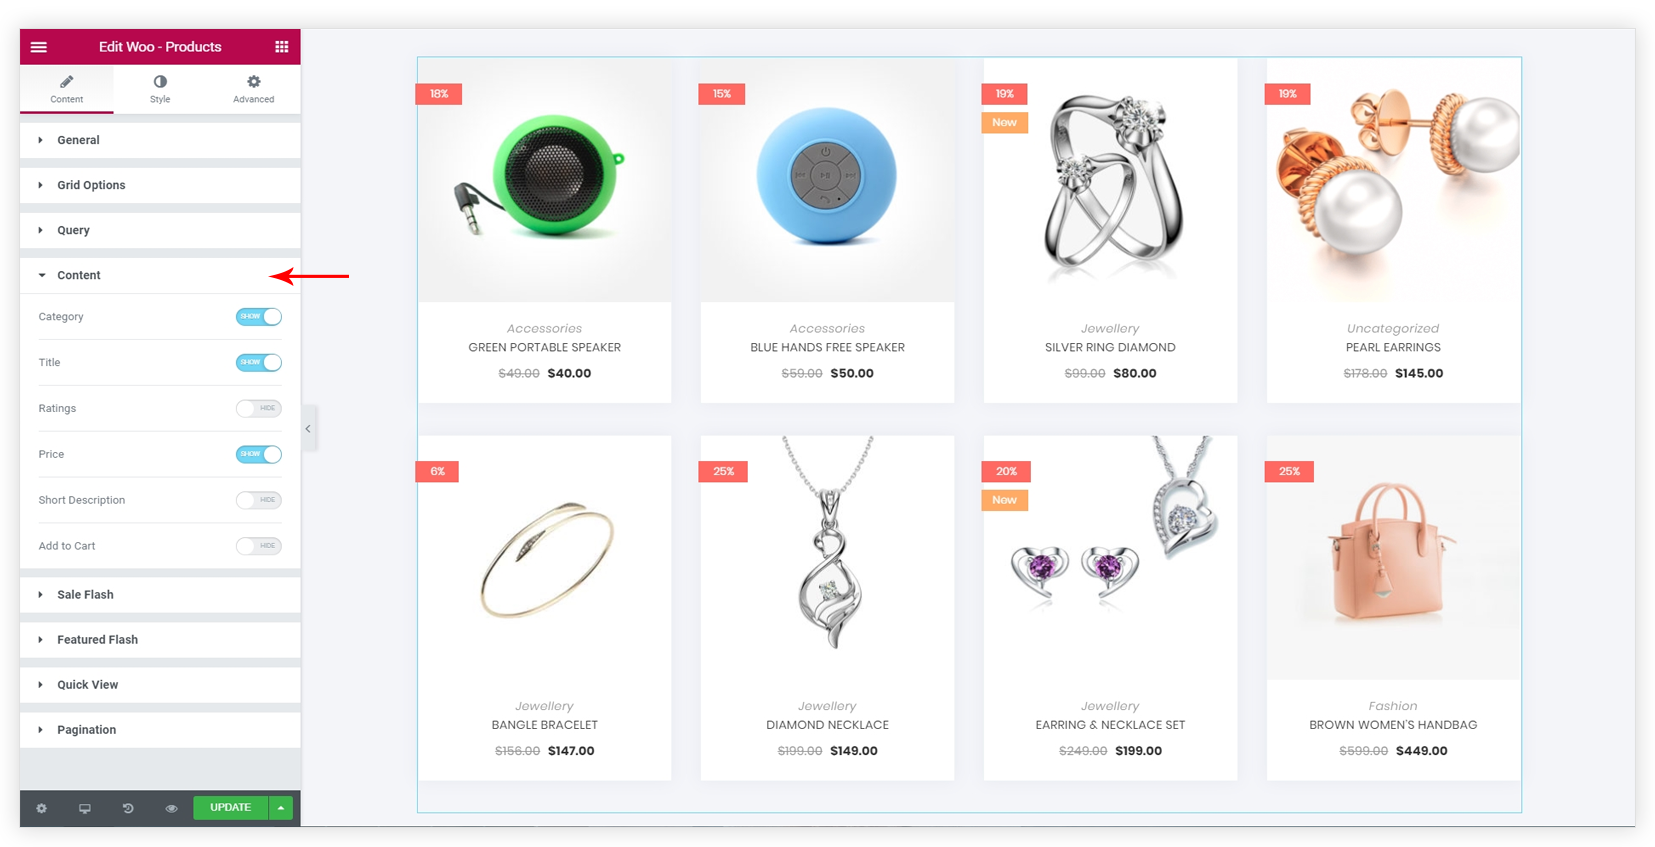 Woo - Products Widget – Ultimate Addons for Elementor